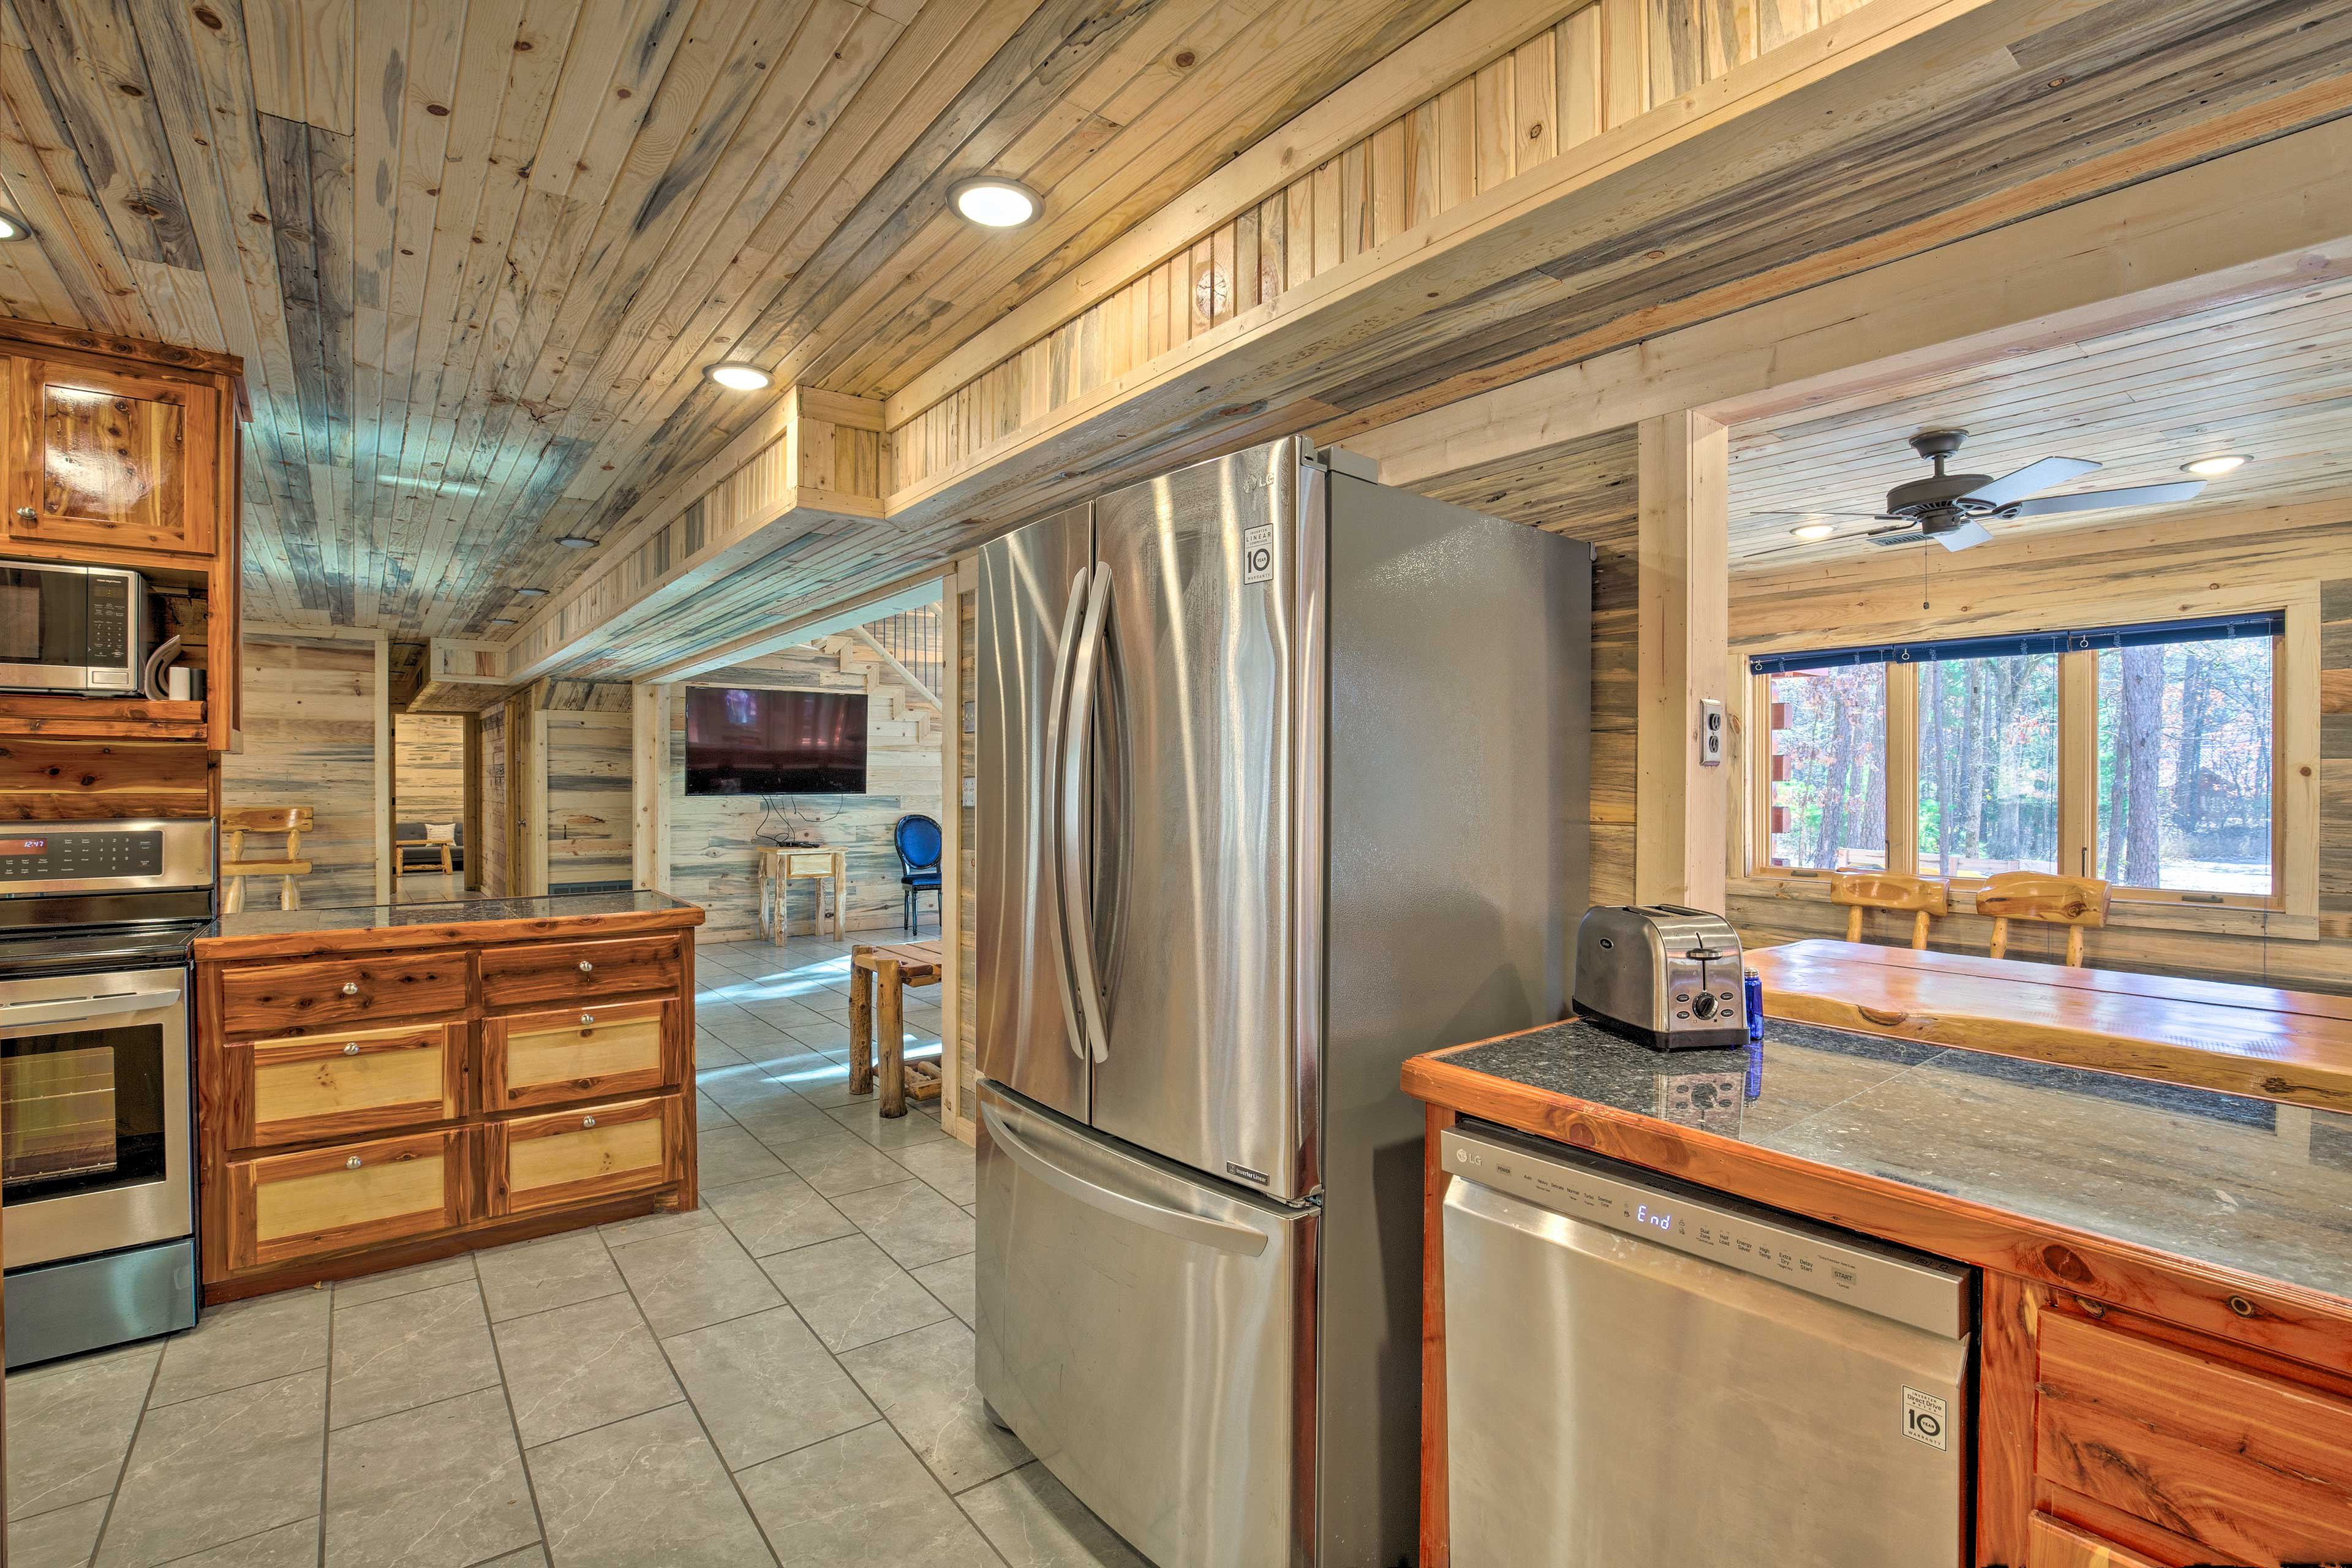 Use stainless steel appliances to cook hearty meals for the group.